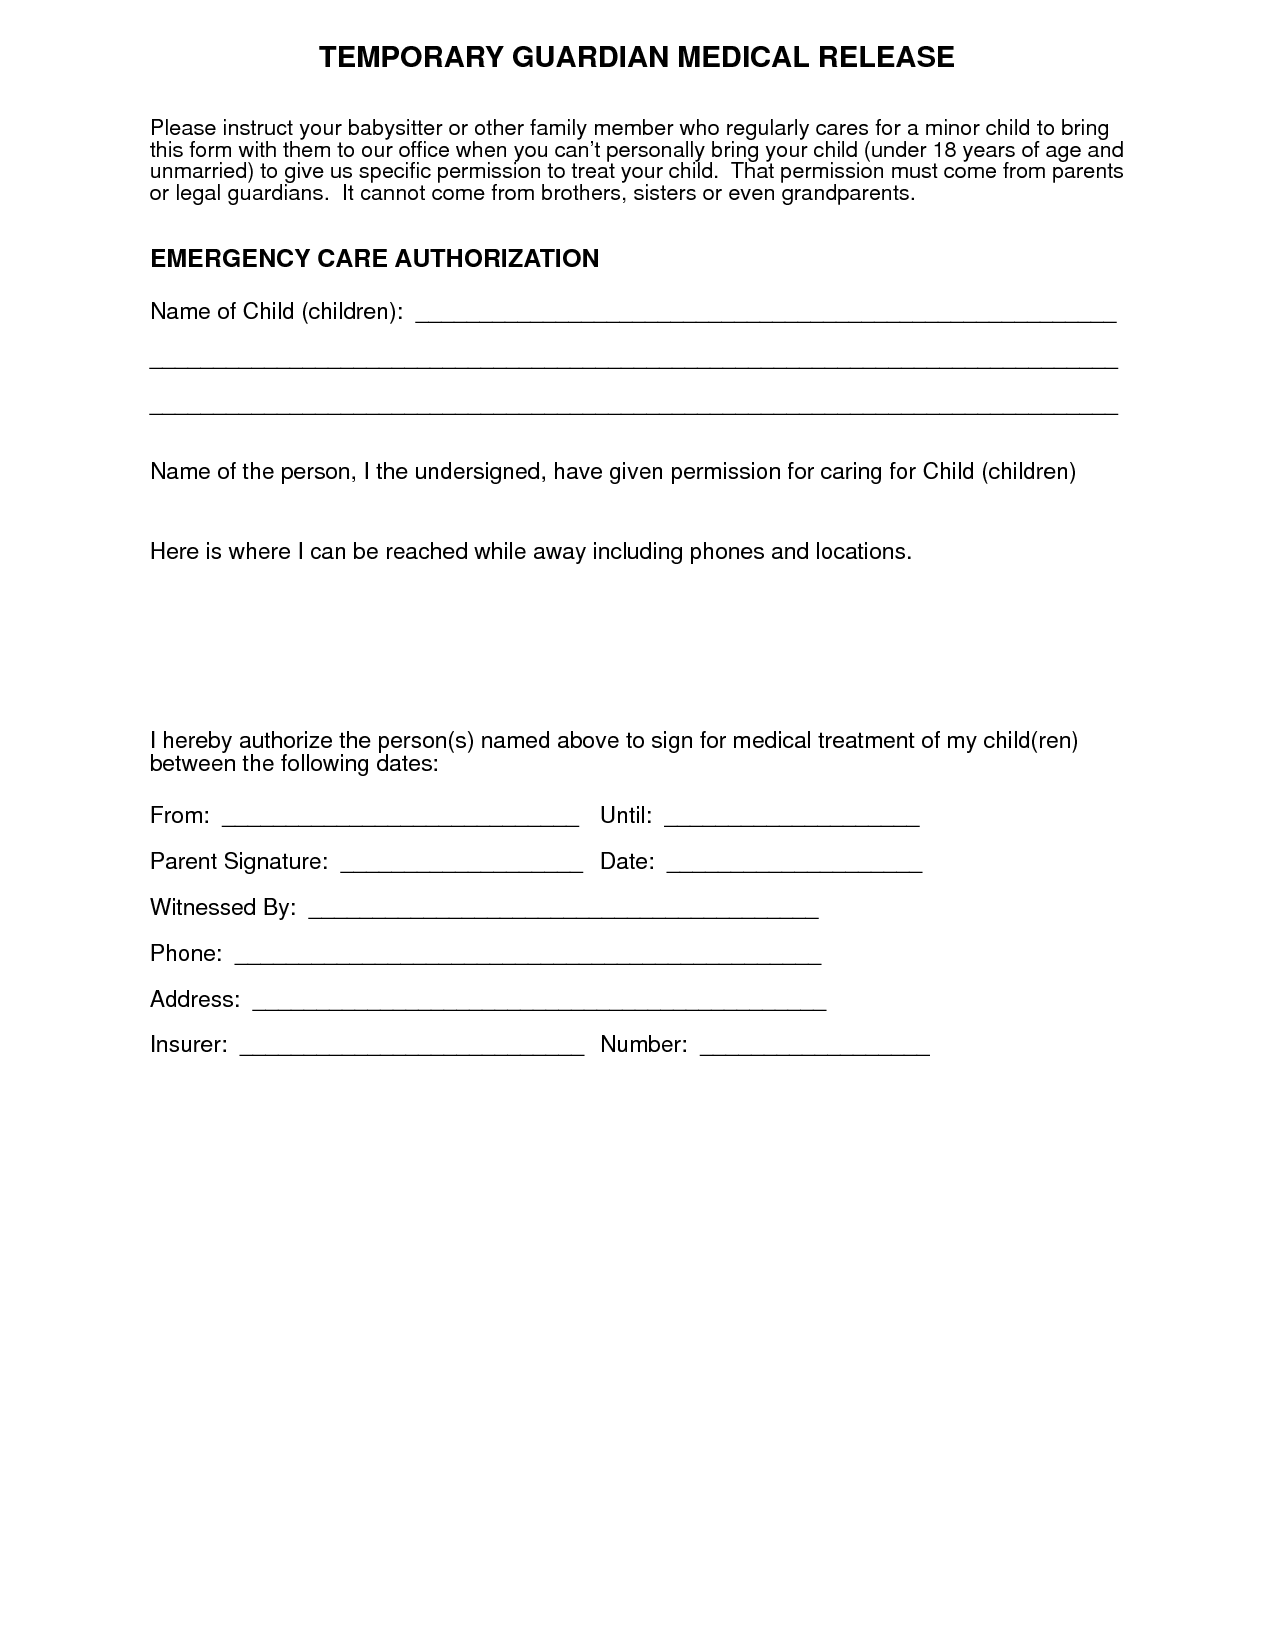 Medical+Authorization+Form+for+Grandparents | For More Medical Release Form  Grandparents